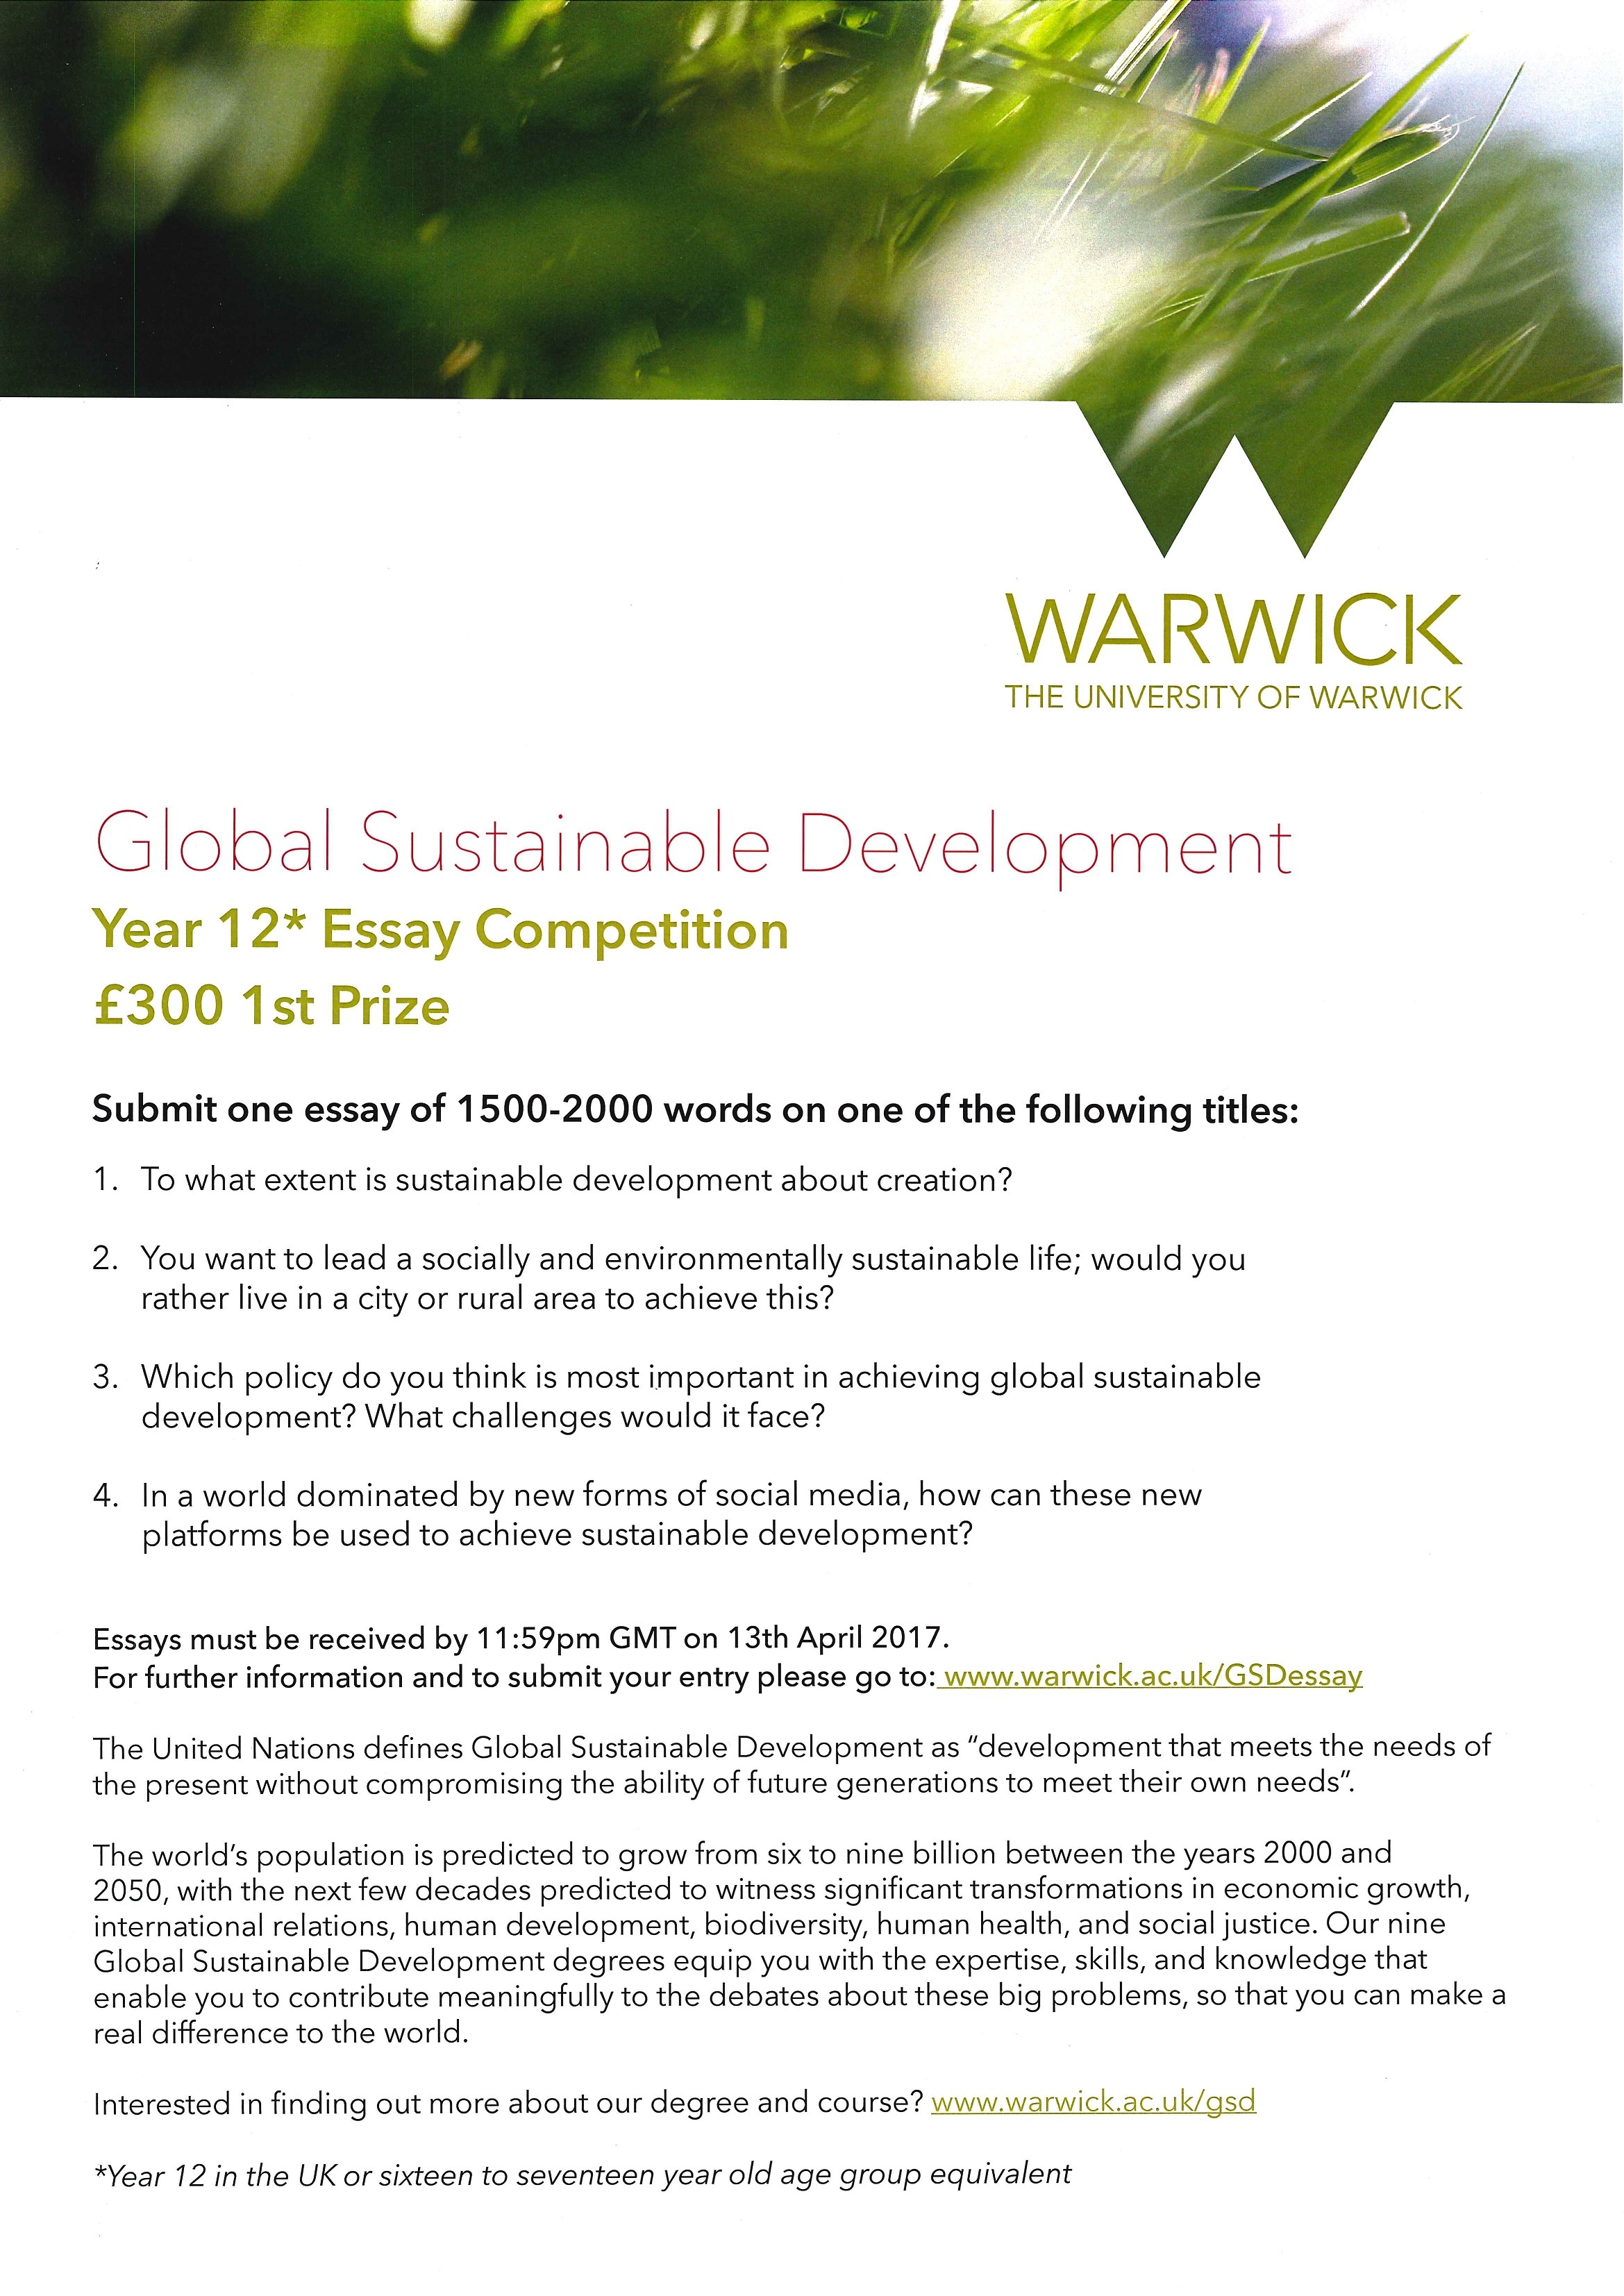 Essay on sustainable development